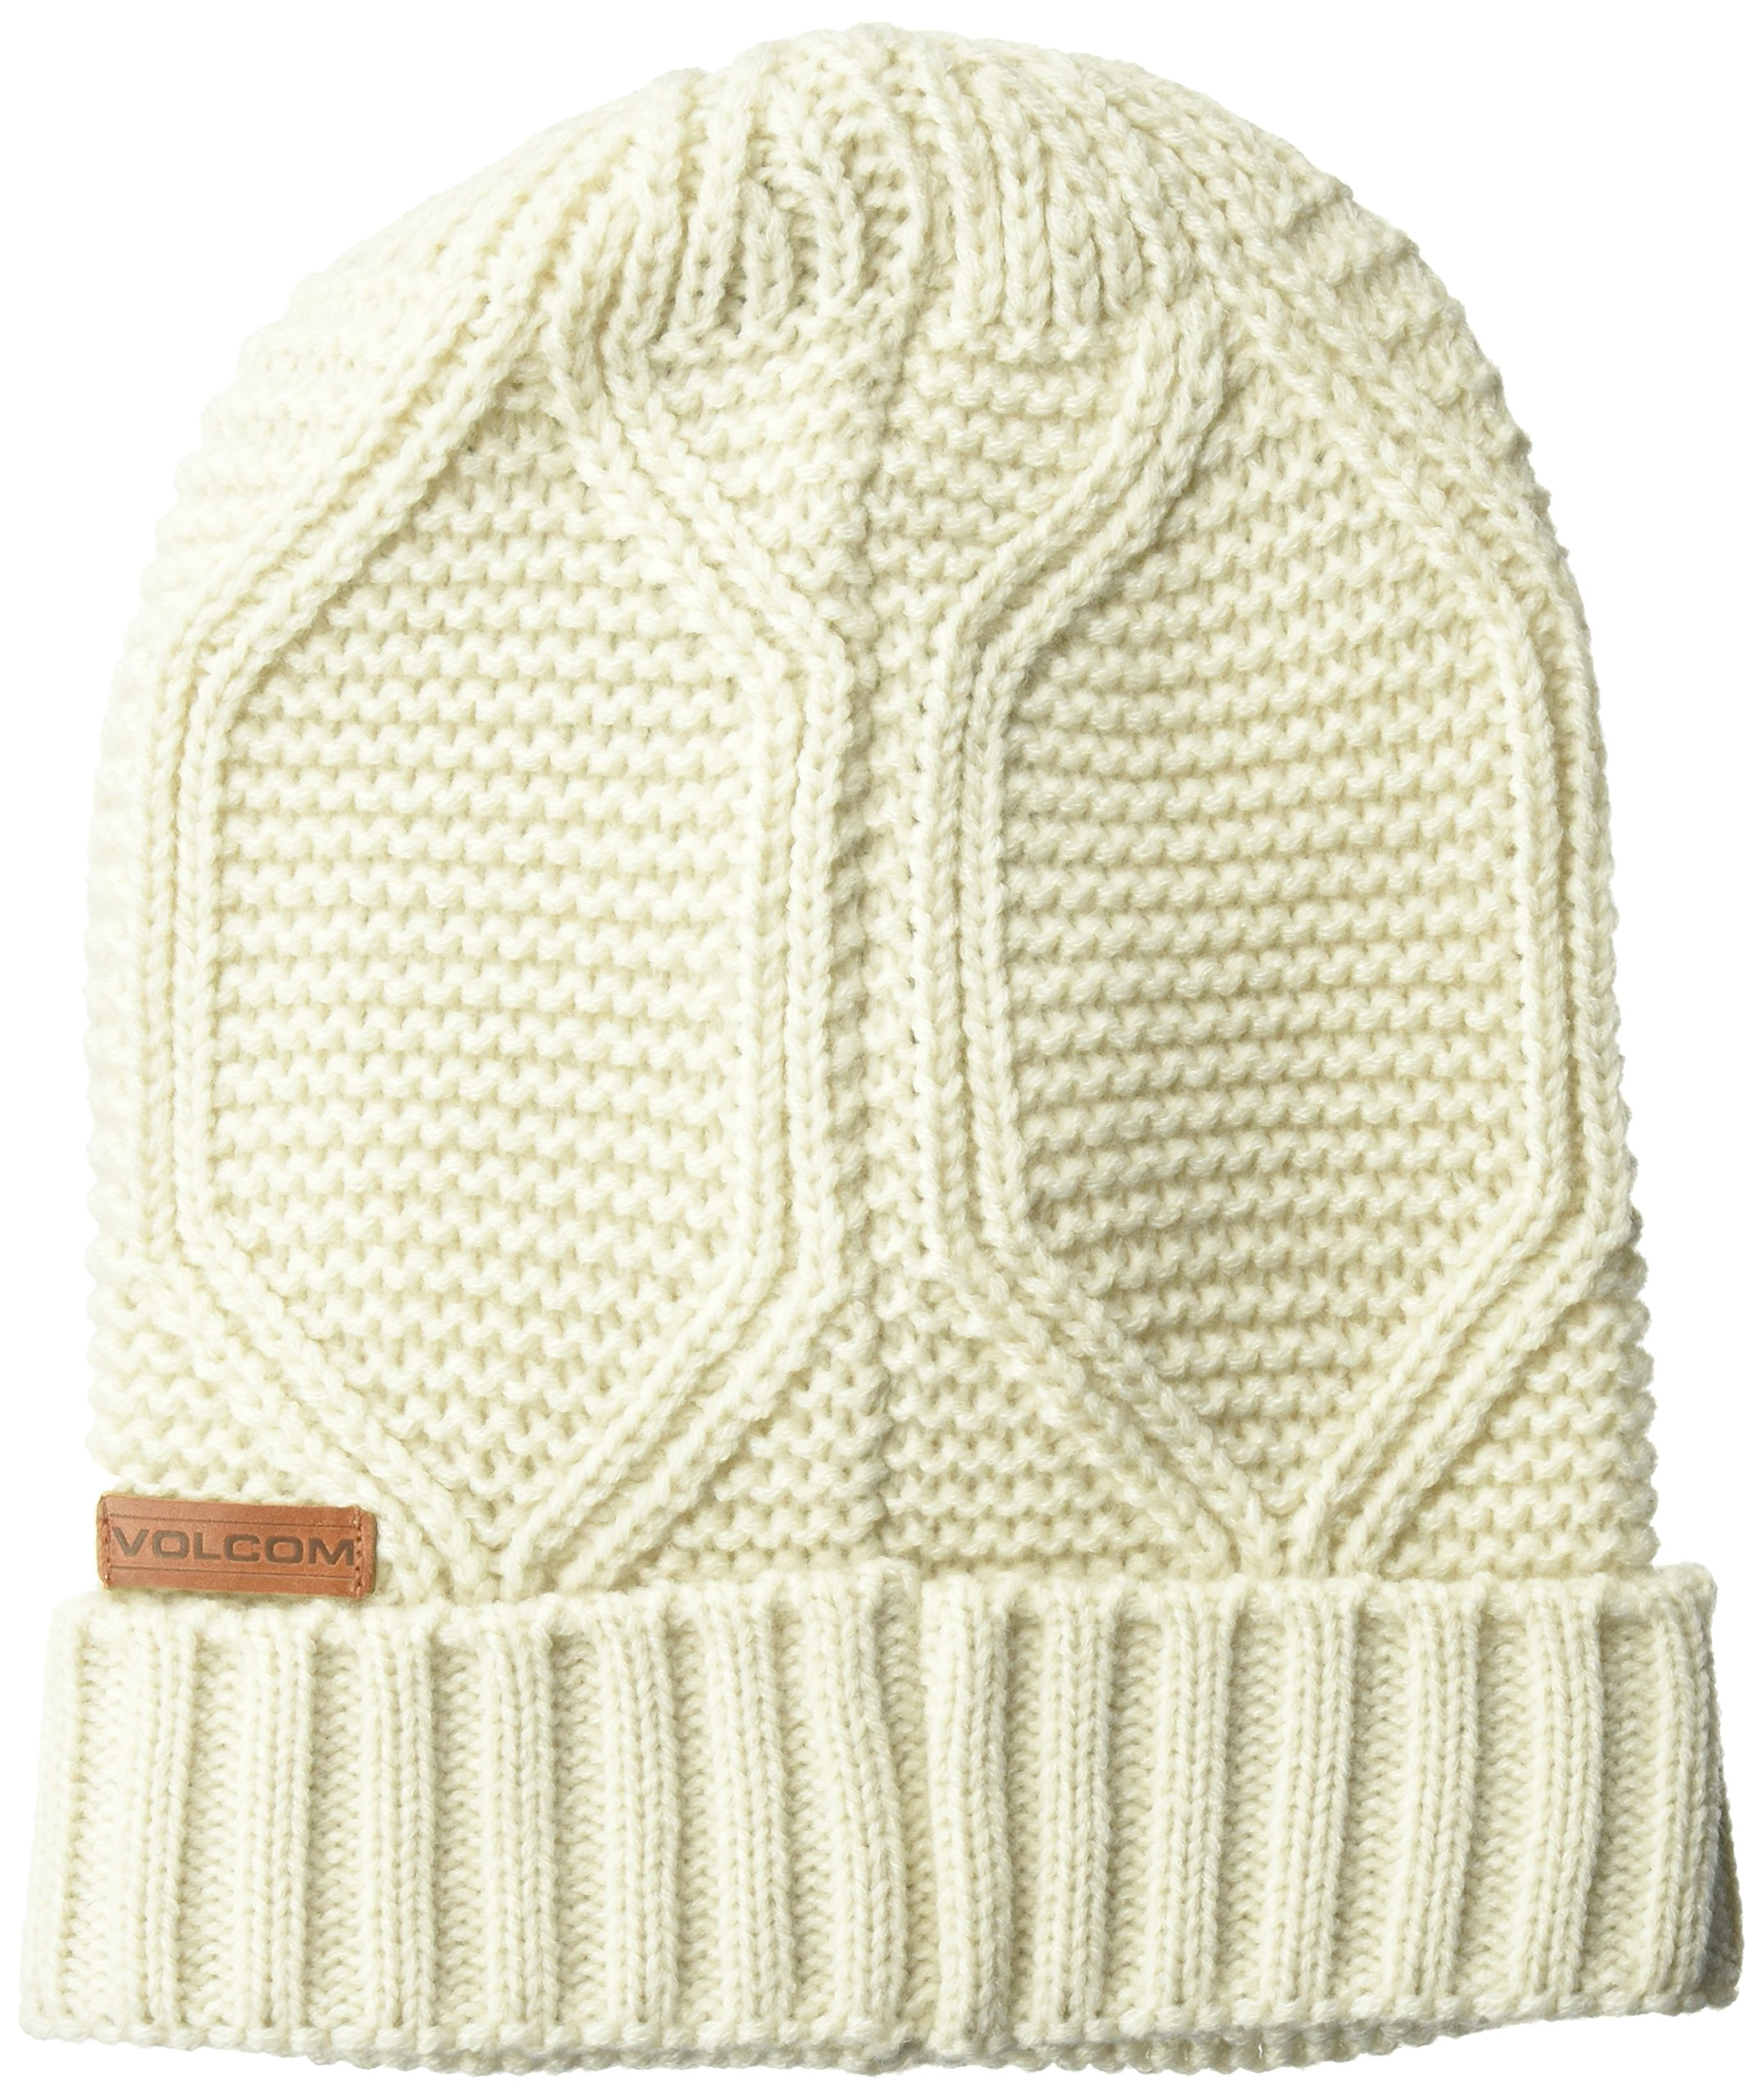 Volcom Junior's Syringa Fine Acrylic Snowboarding Beanie, Natural, ONE Size fits All